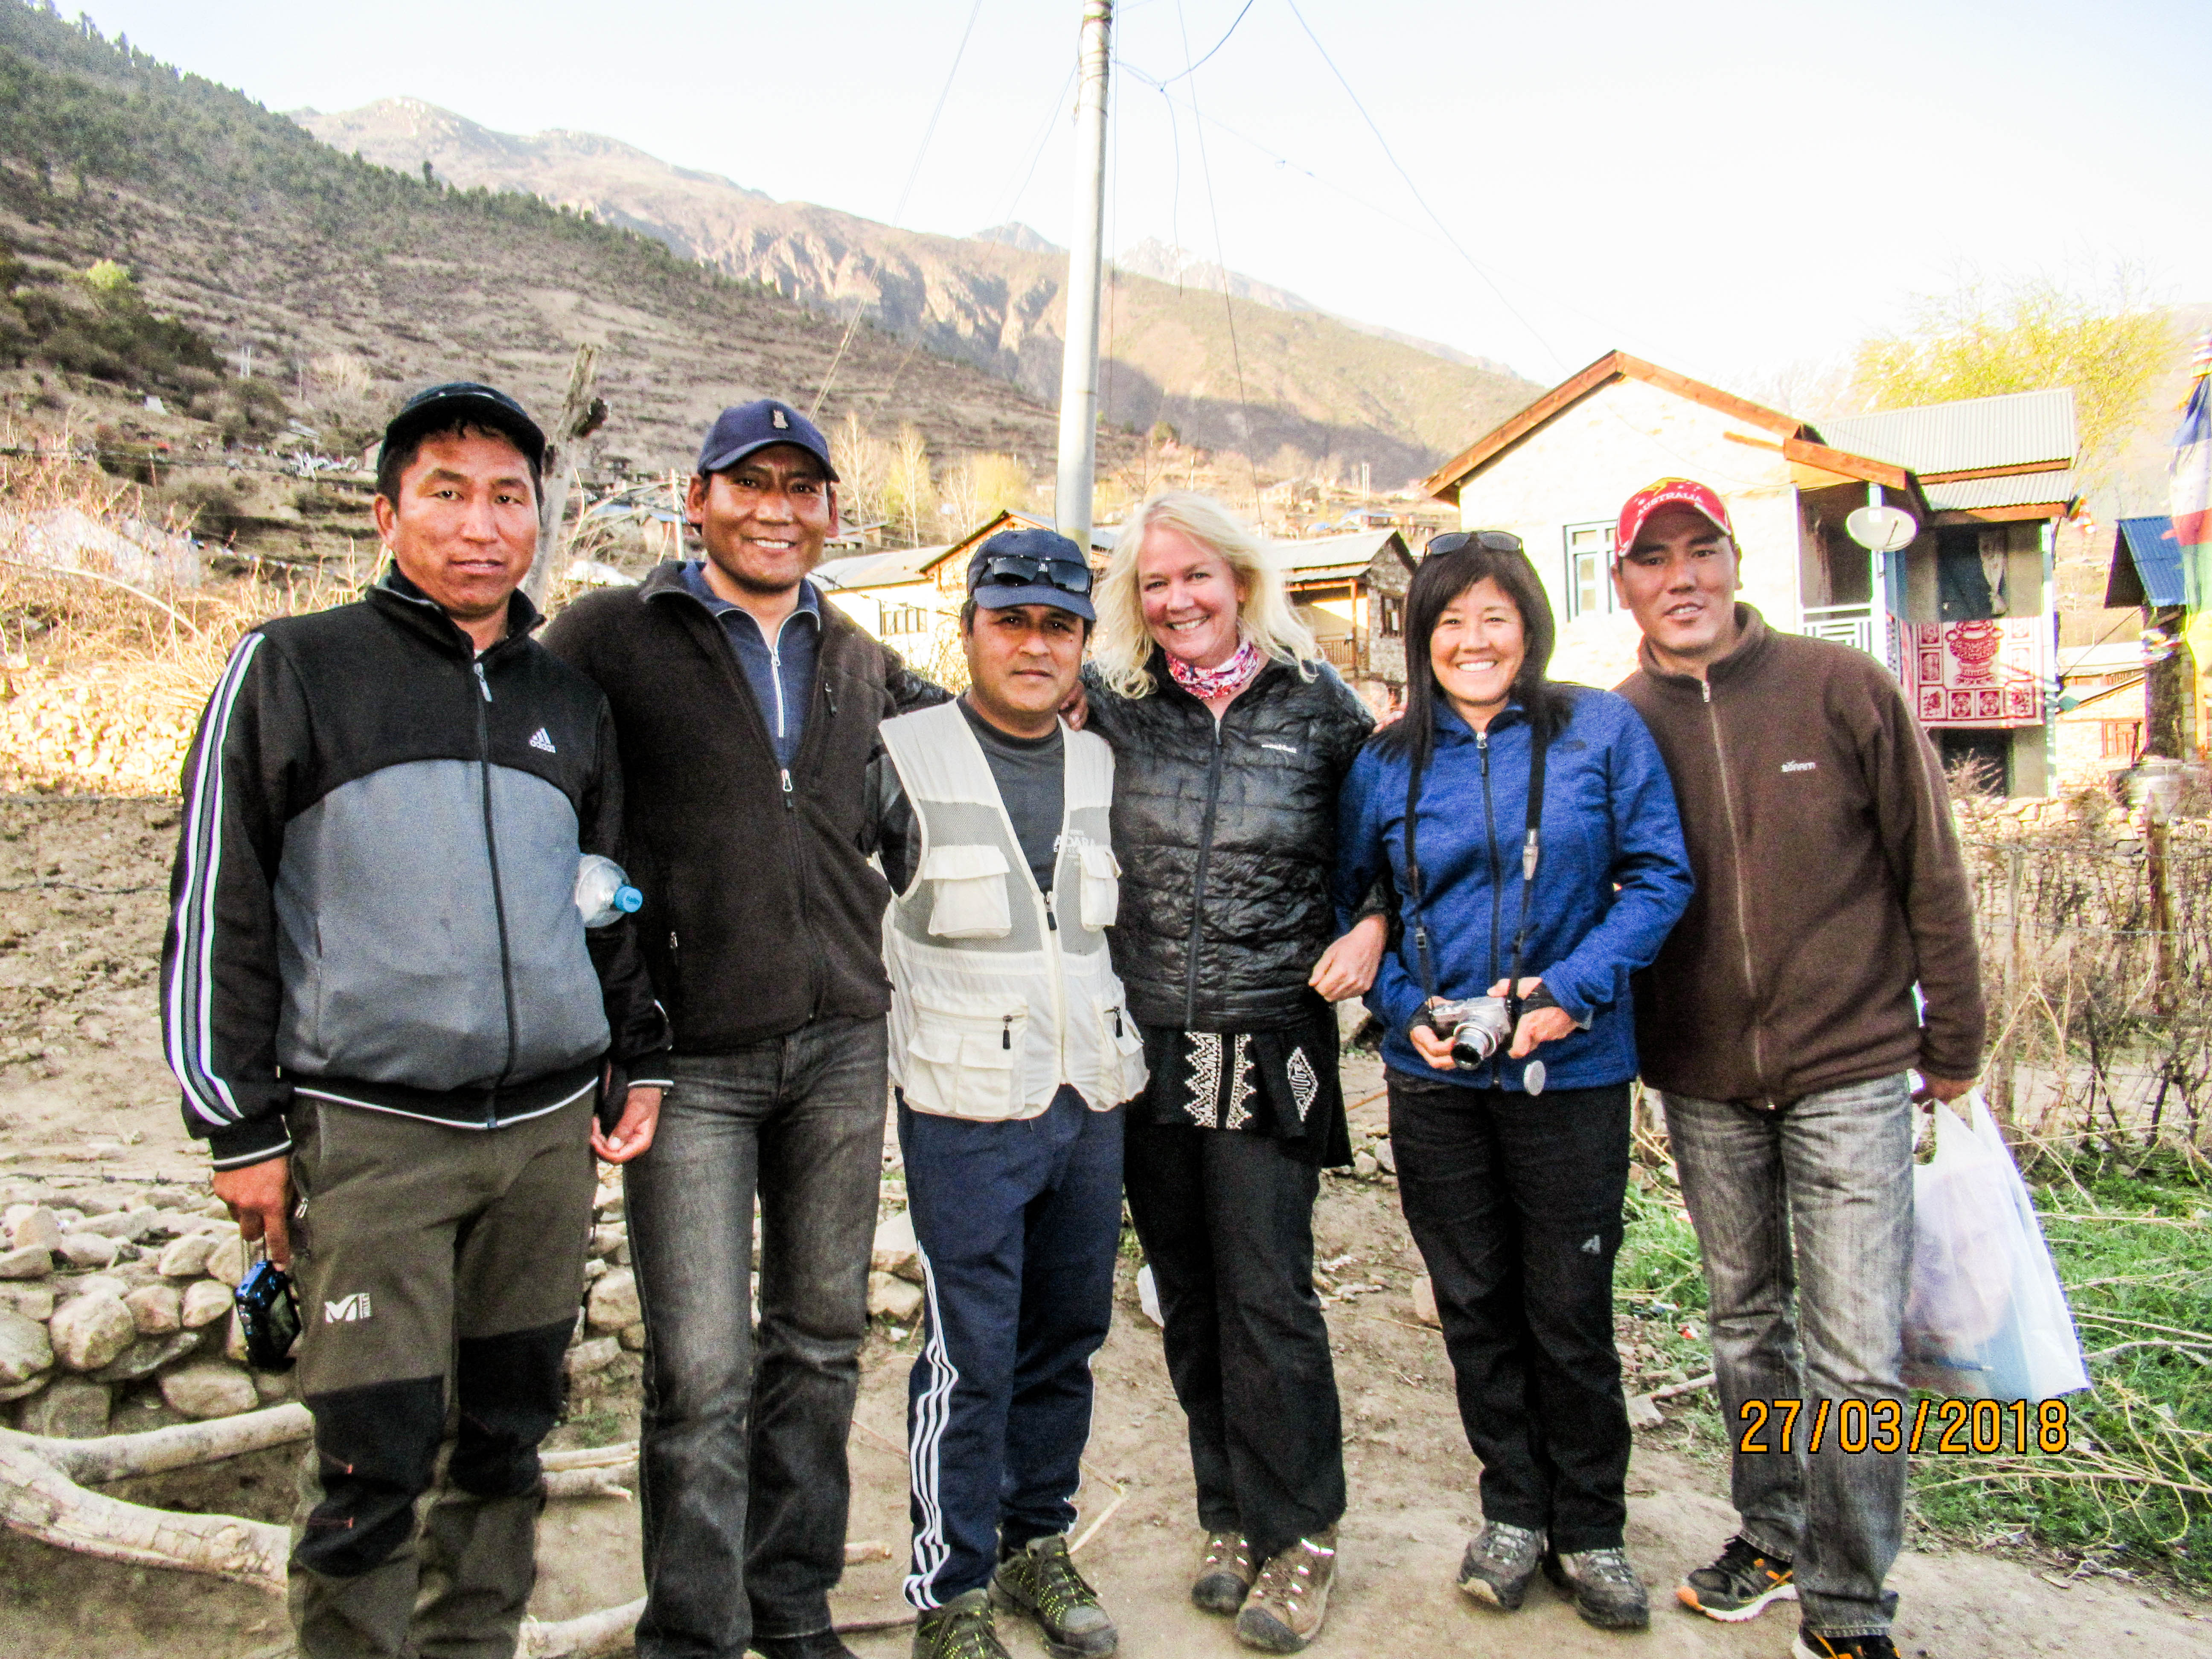 Group photos with the team of Adara Development Nepal in HEAD Nepal